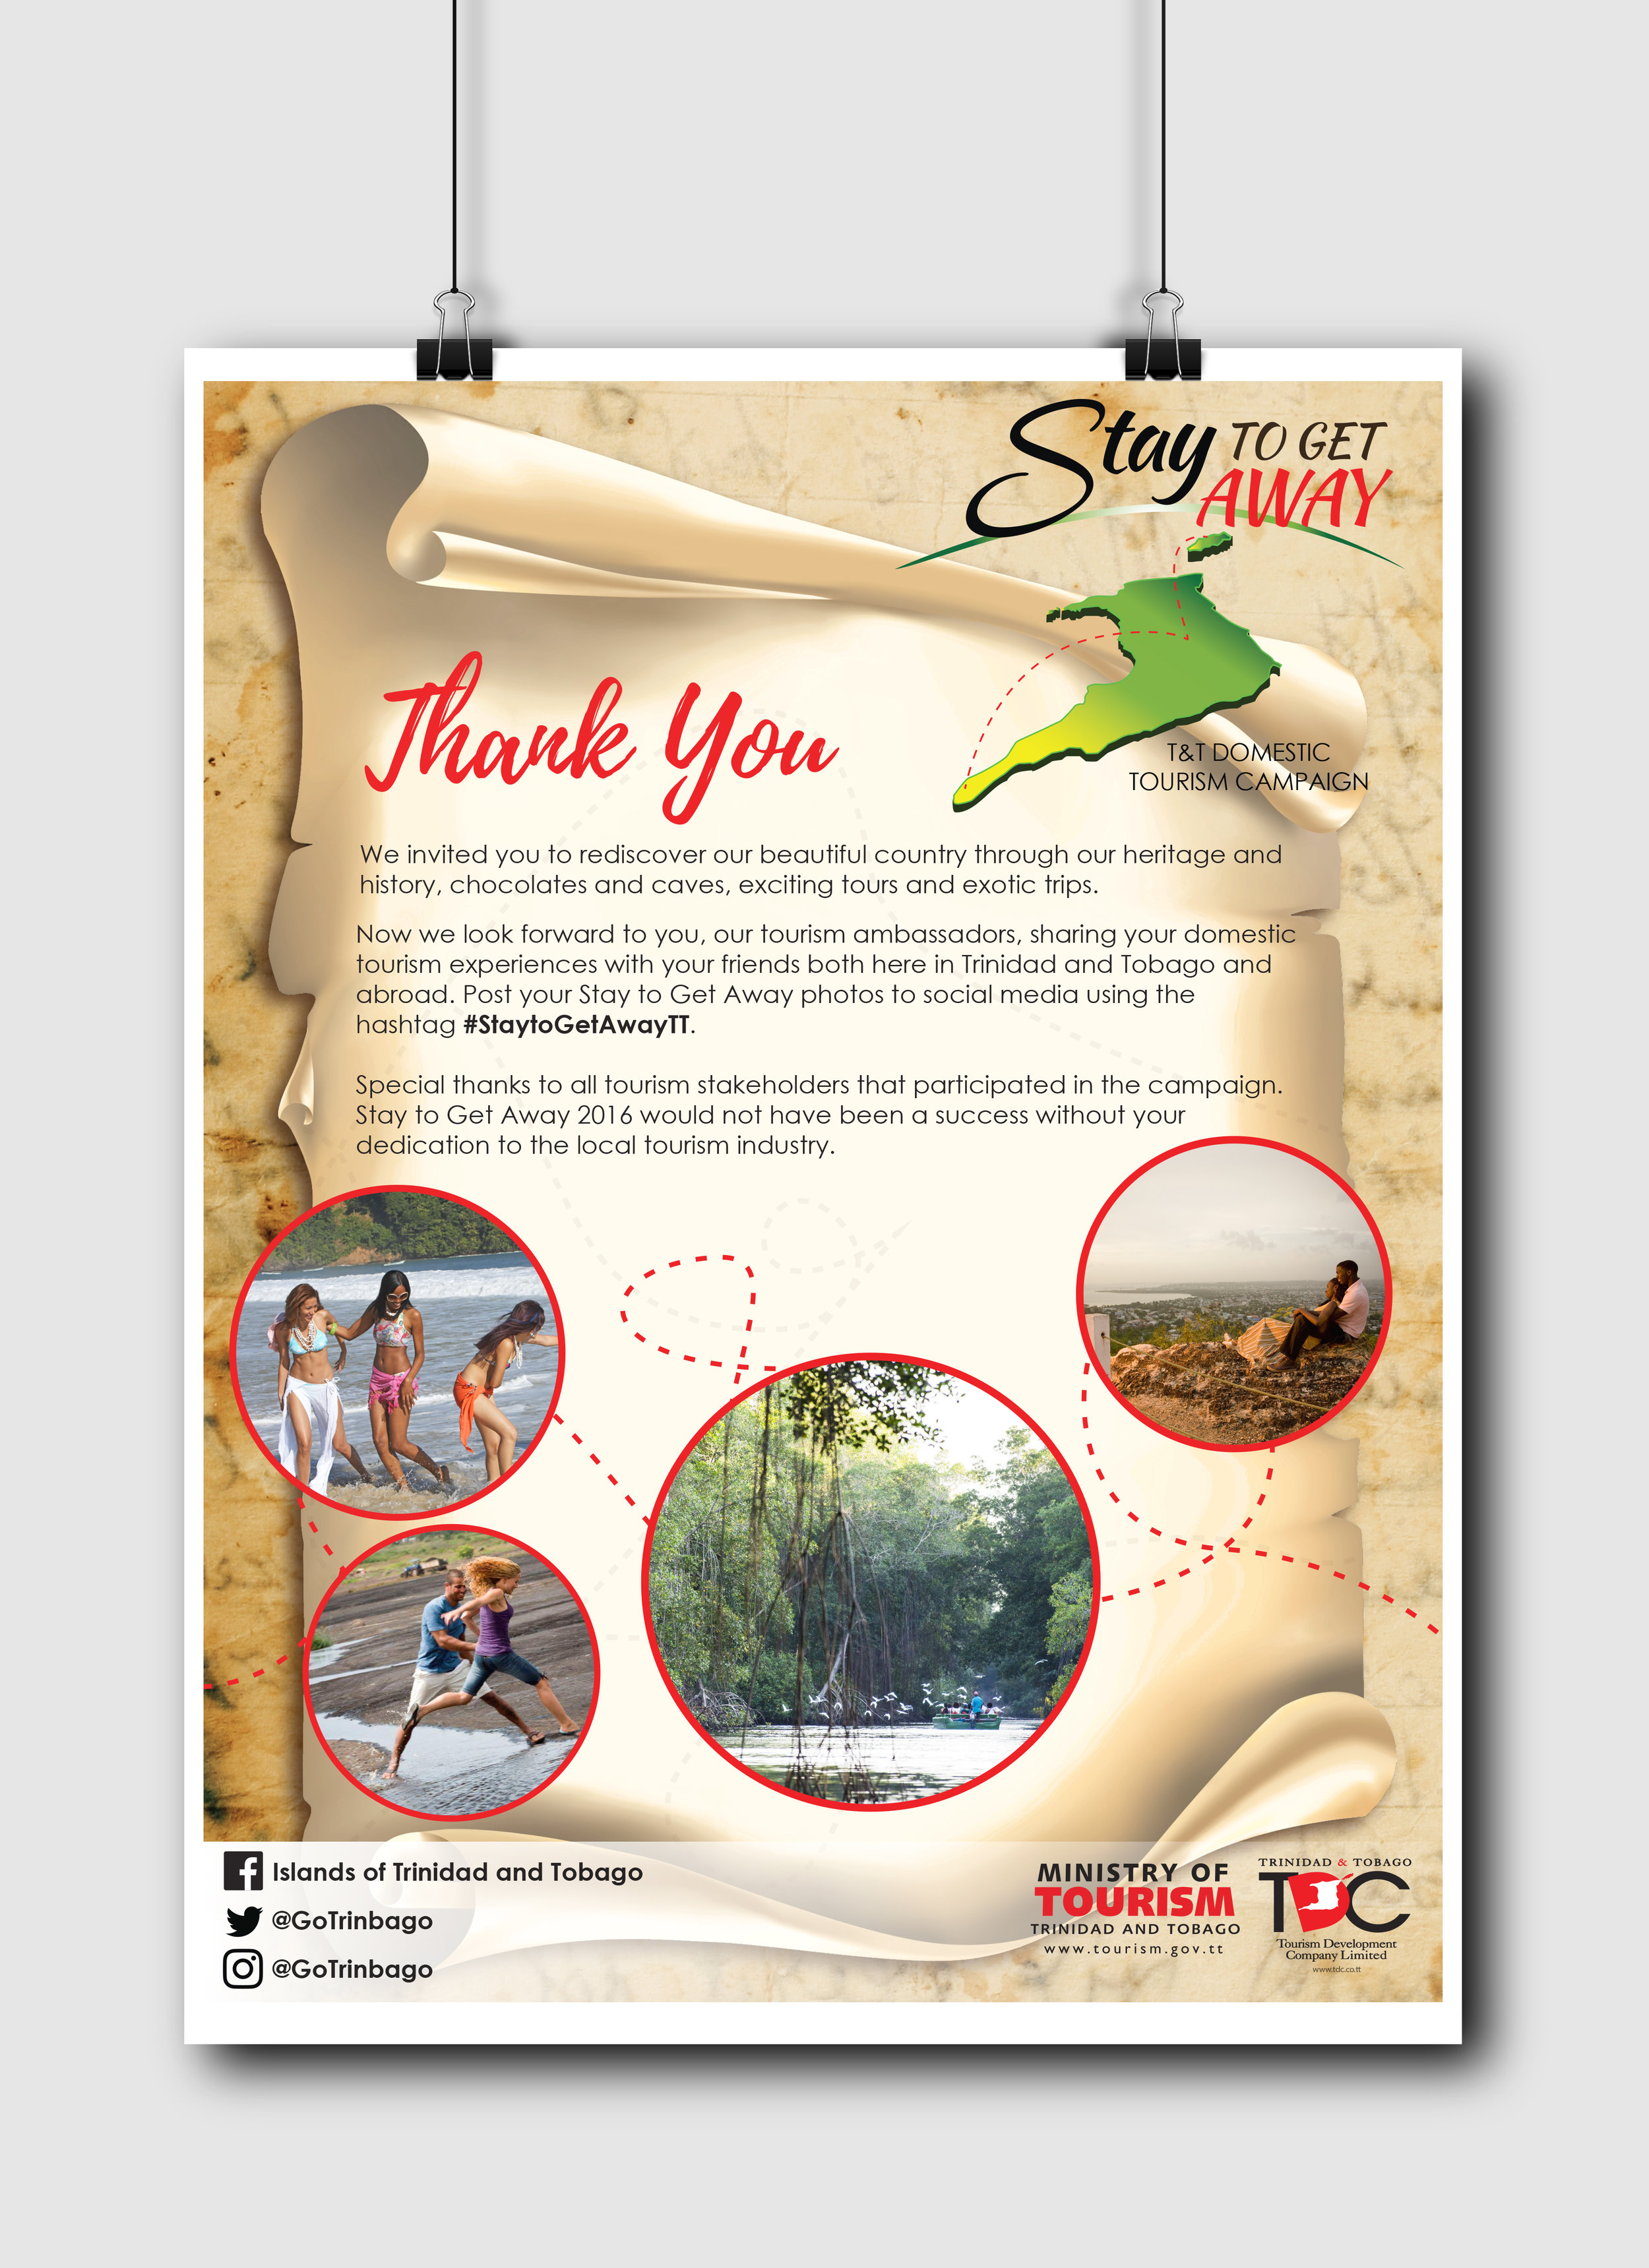 Stay to Get Away Thank You One page press advertisement - Client: The Tourism Development CompanyDescription: Design a Thank You ad to the public for their participation and engagement in the 2016 Stay to Get Away campaign. This design continues with the